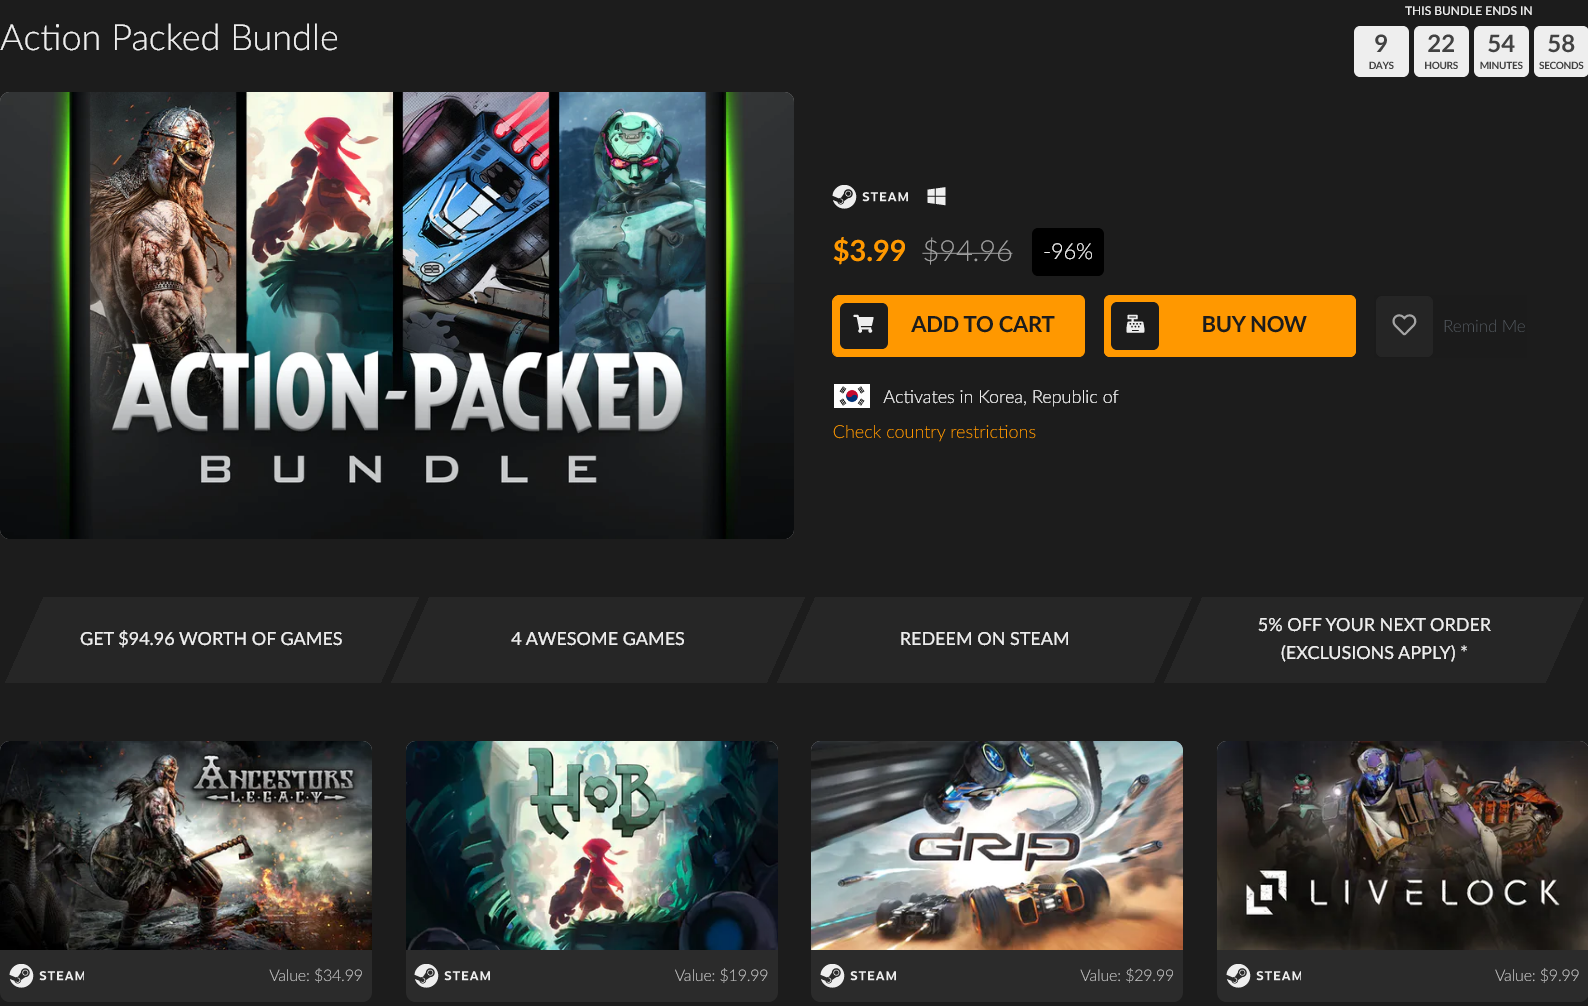 Screenshot_2020-10-22 Action Packed Bundle Steam Game Bundle Fanatical.png